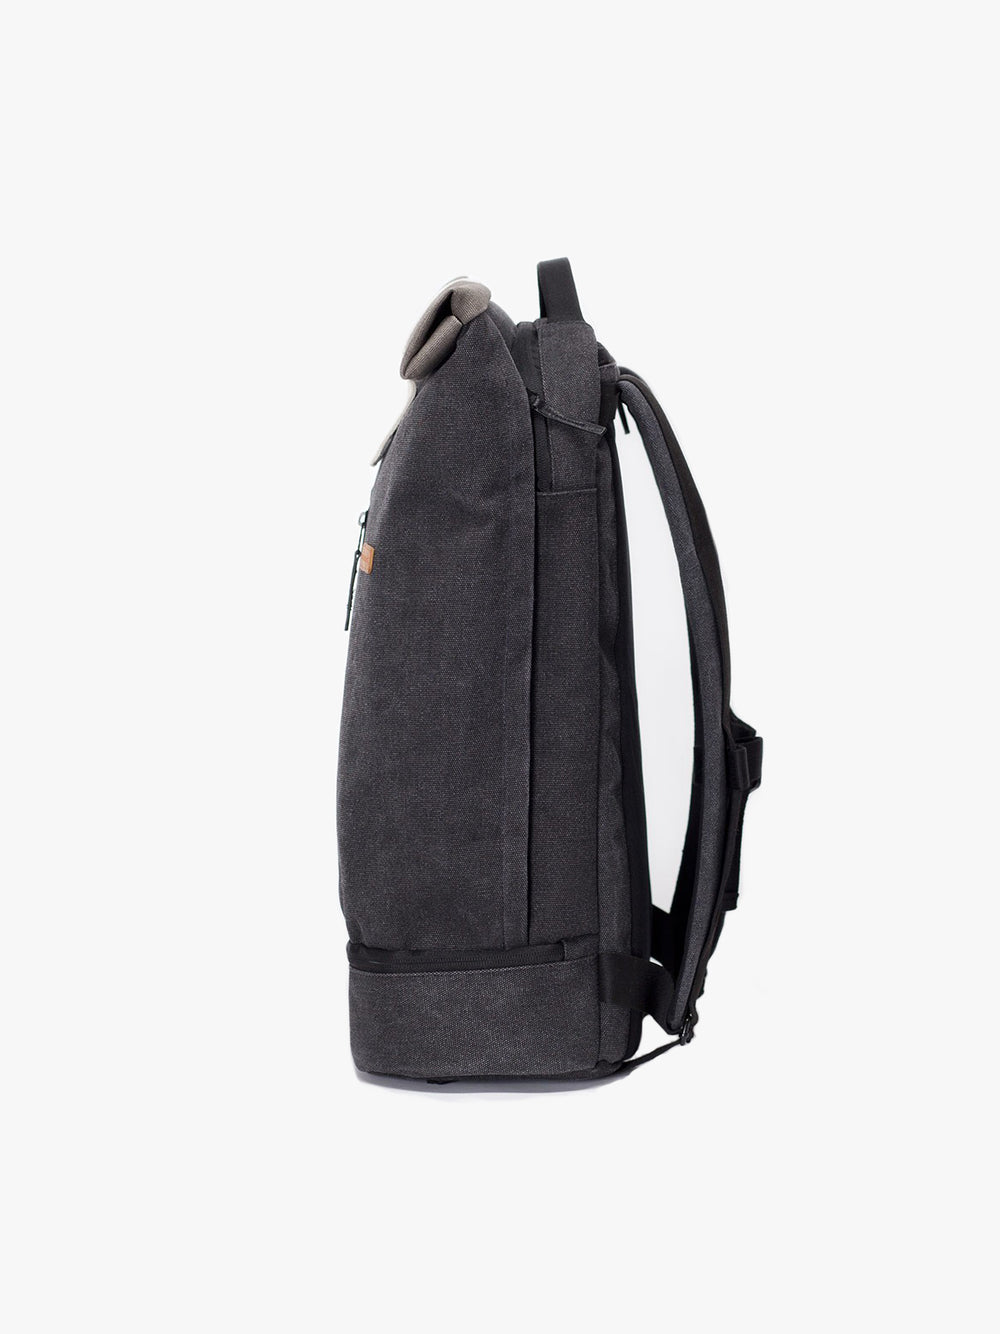 Flexible Hajo Pro backpack for work and leisure. Multiple compartments.